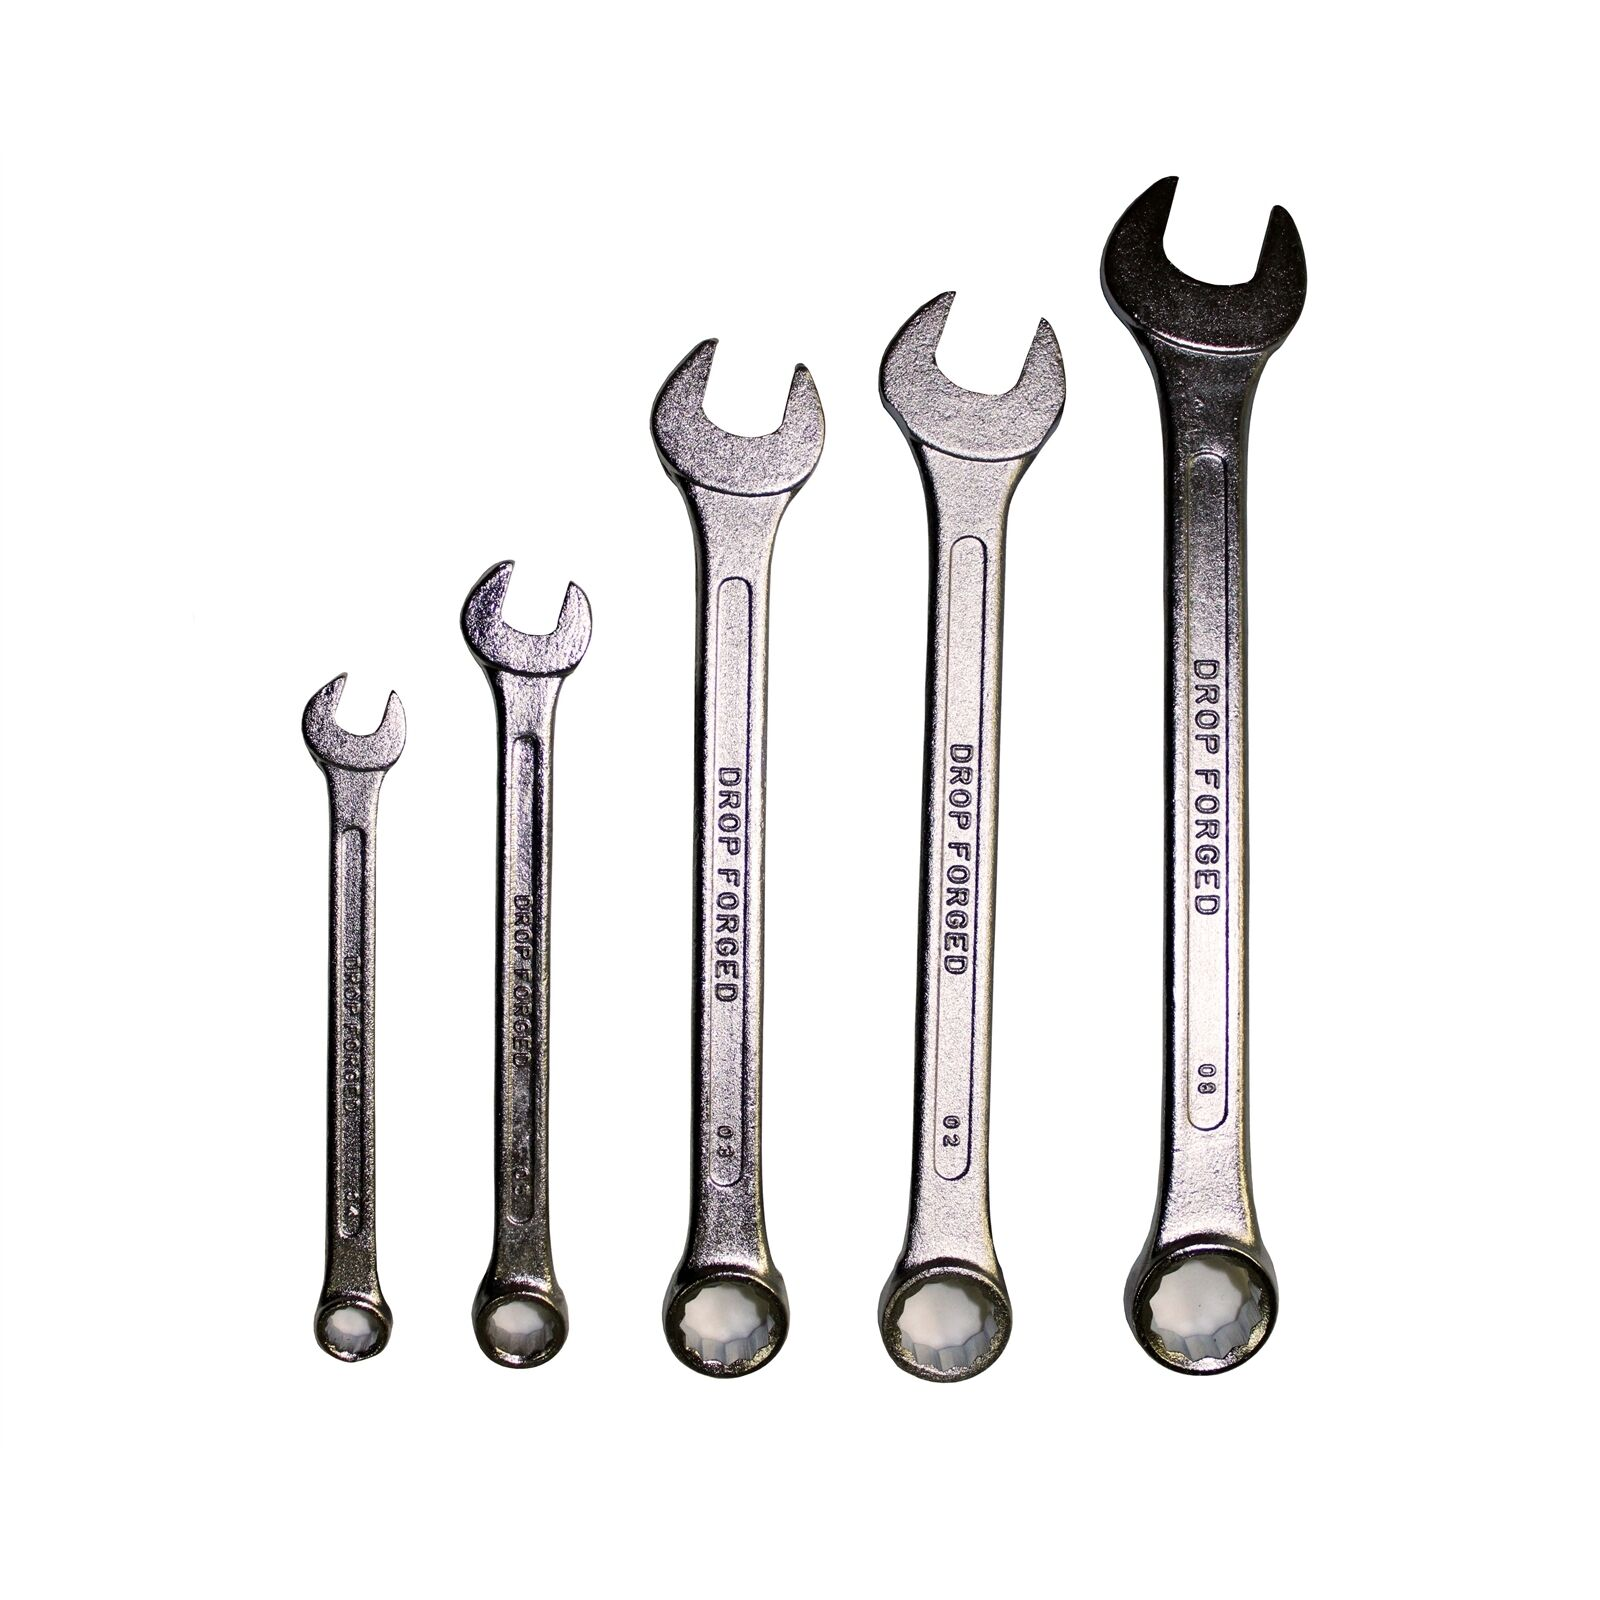 Craftright SPANNER SET 5 Pieces, 8, 10, 14, 15 & 18mm, Drop Forged, Heat Treated